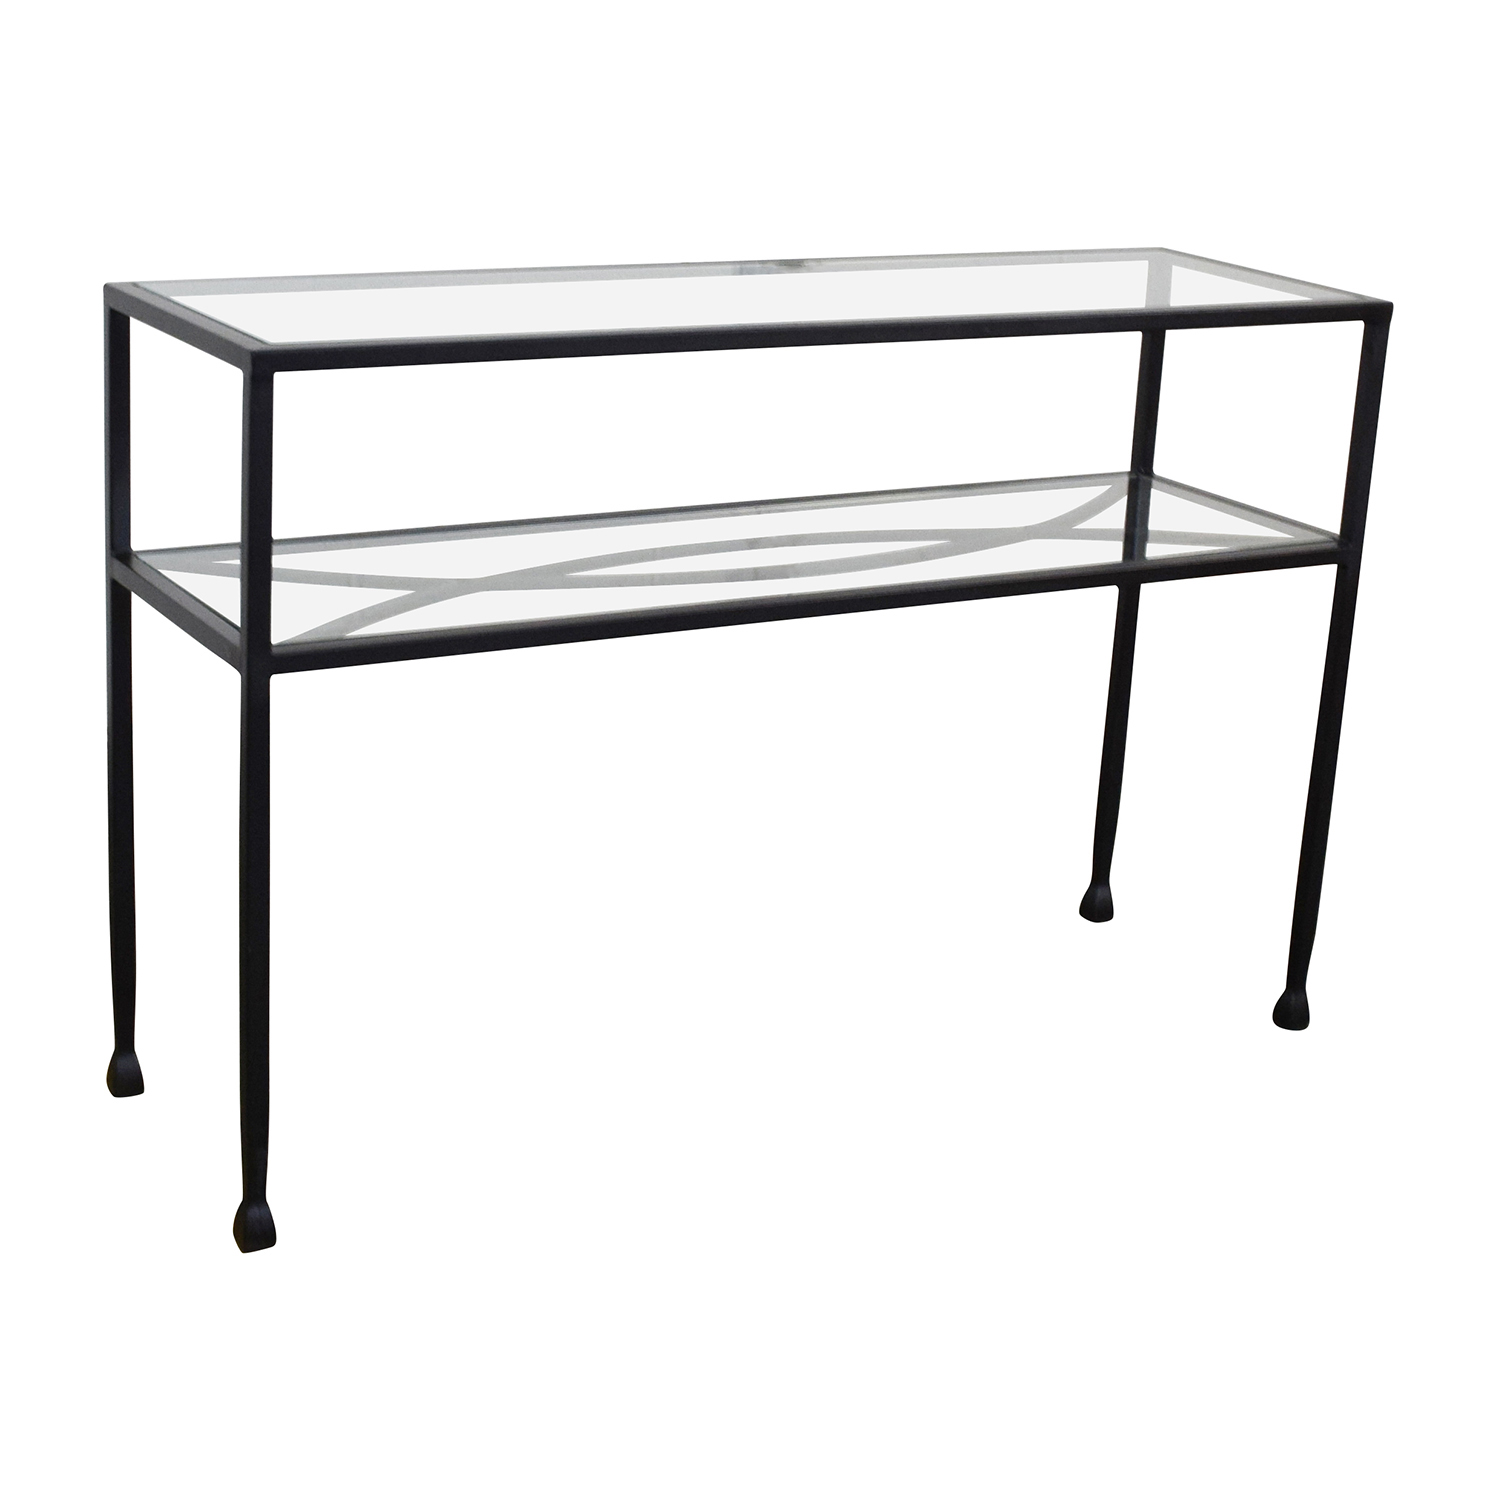 84 Off Pier 1 Pier 1 Glass Console Or Sofa Back Table Tables